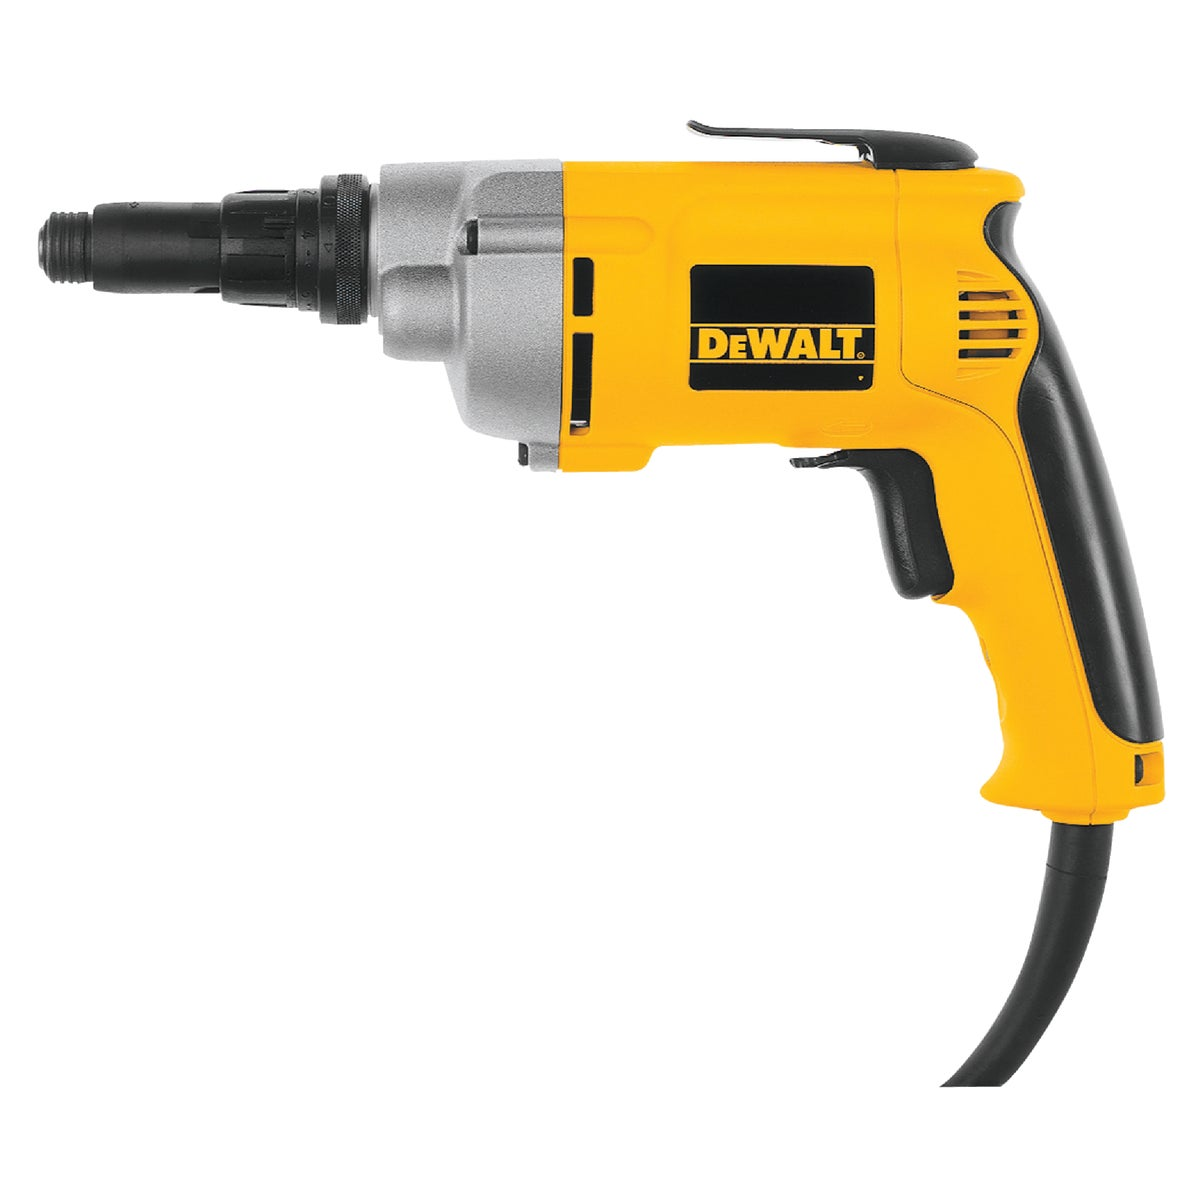 HEAVY DUTY SCREWDRIVER